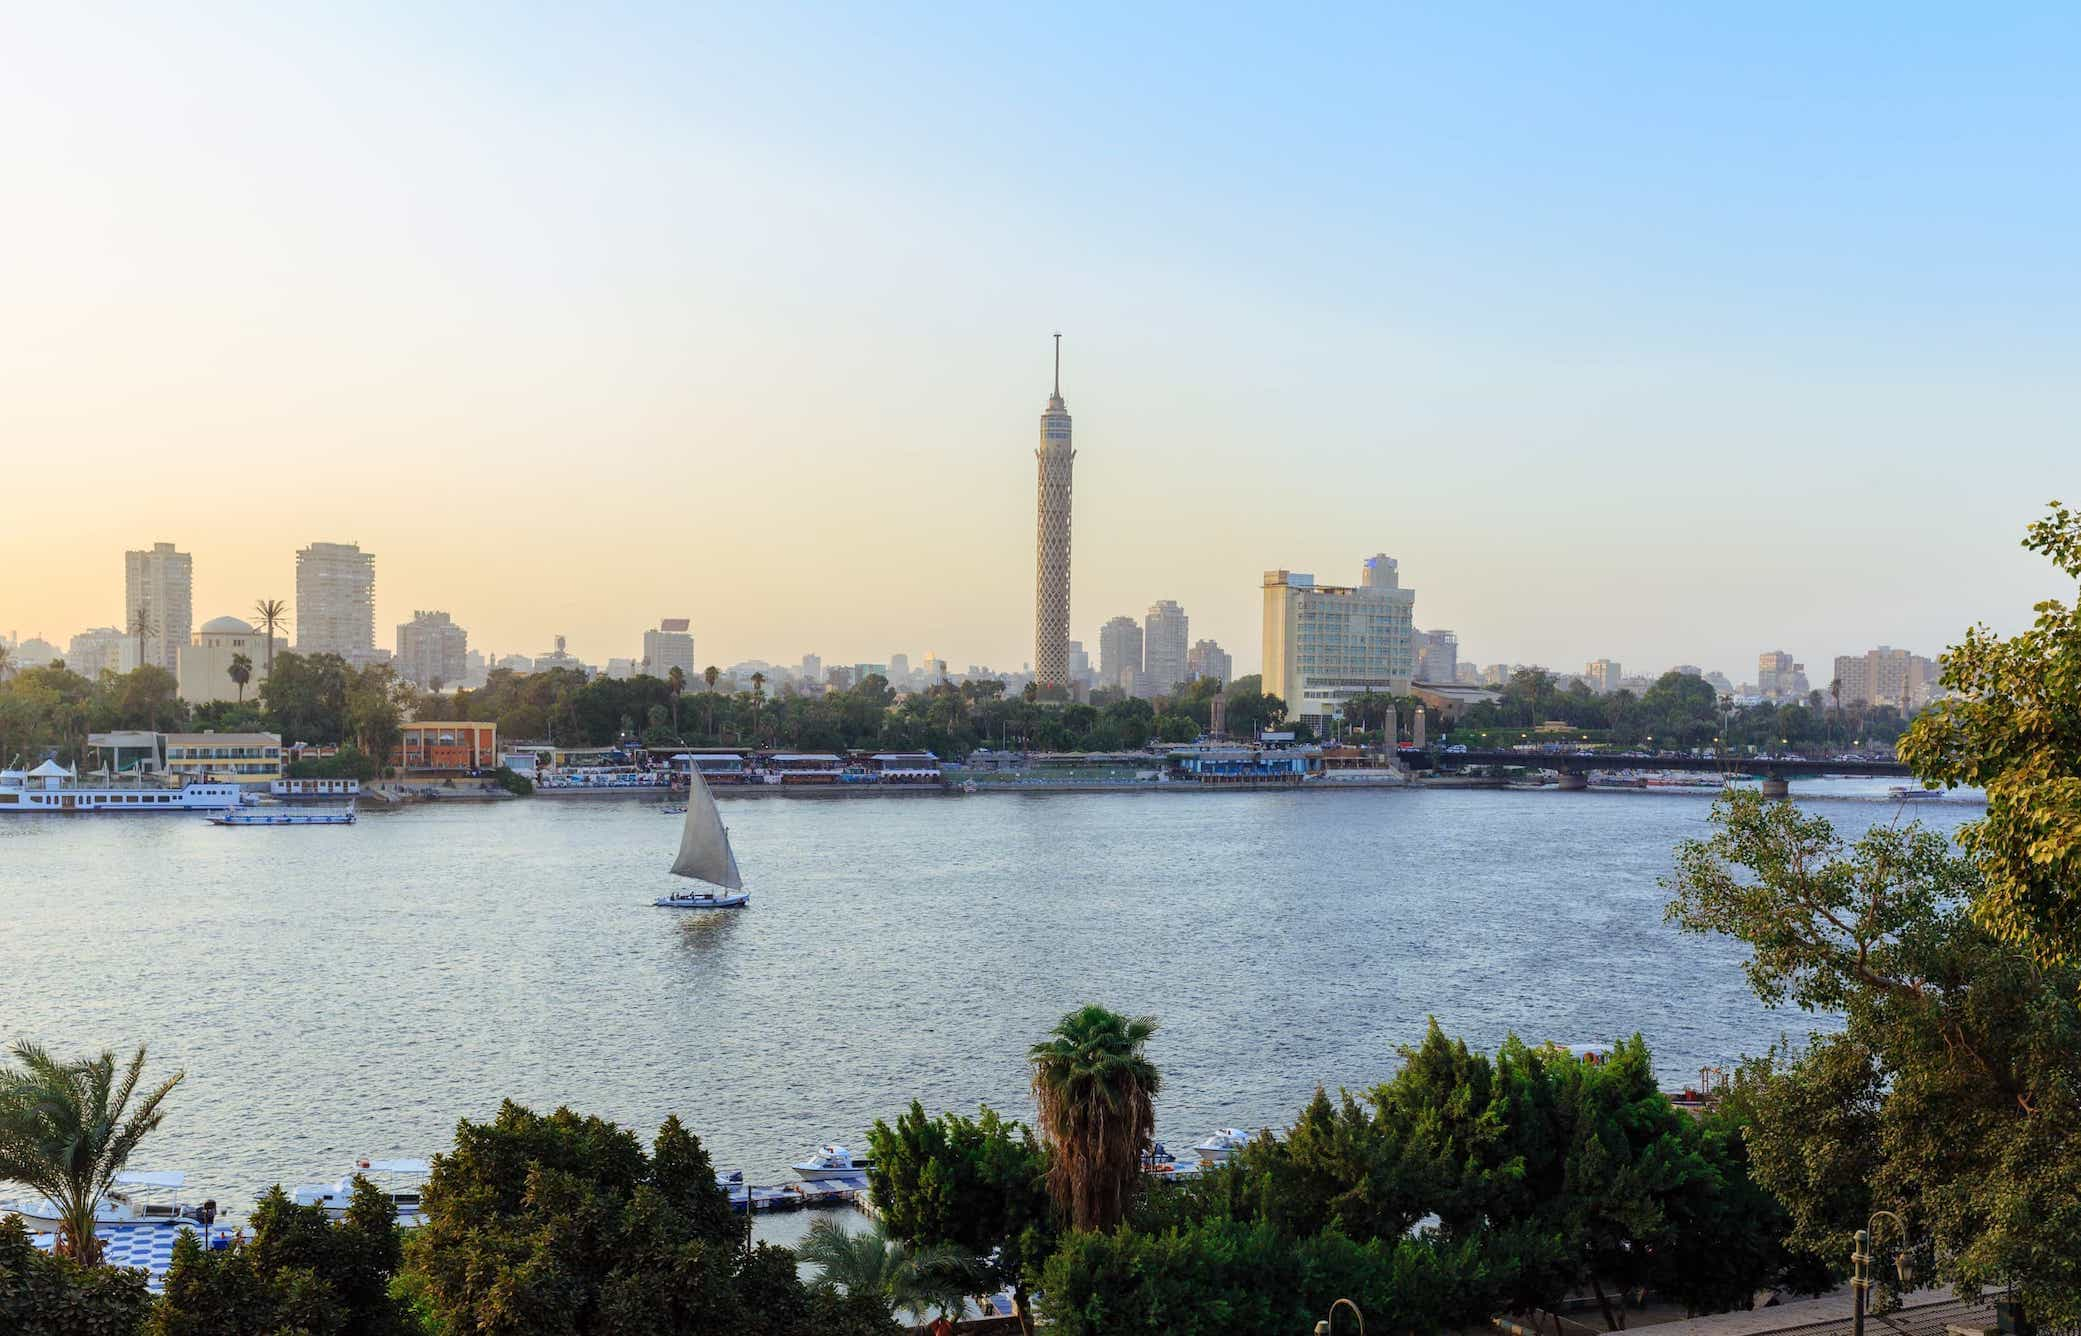 RiseUp Cairo is organizing four hackathons in four Upper Egyptian governorates next week